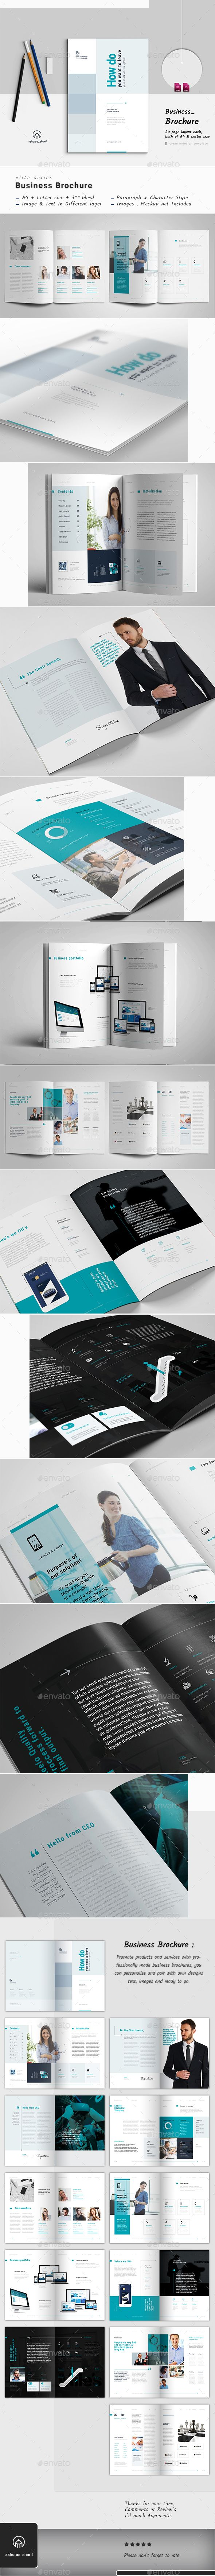 Brochure — InDesign INDD #annual report template #clean profile • Available here ➝ https://graphicriver.net/item/brochure/20953869?ref=pxcr